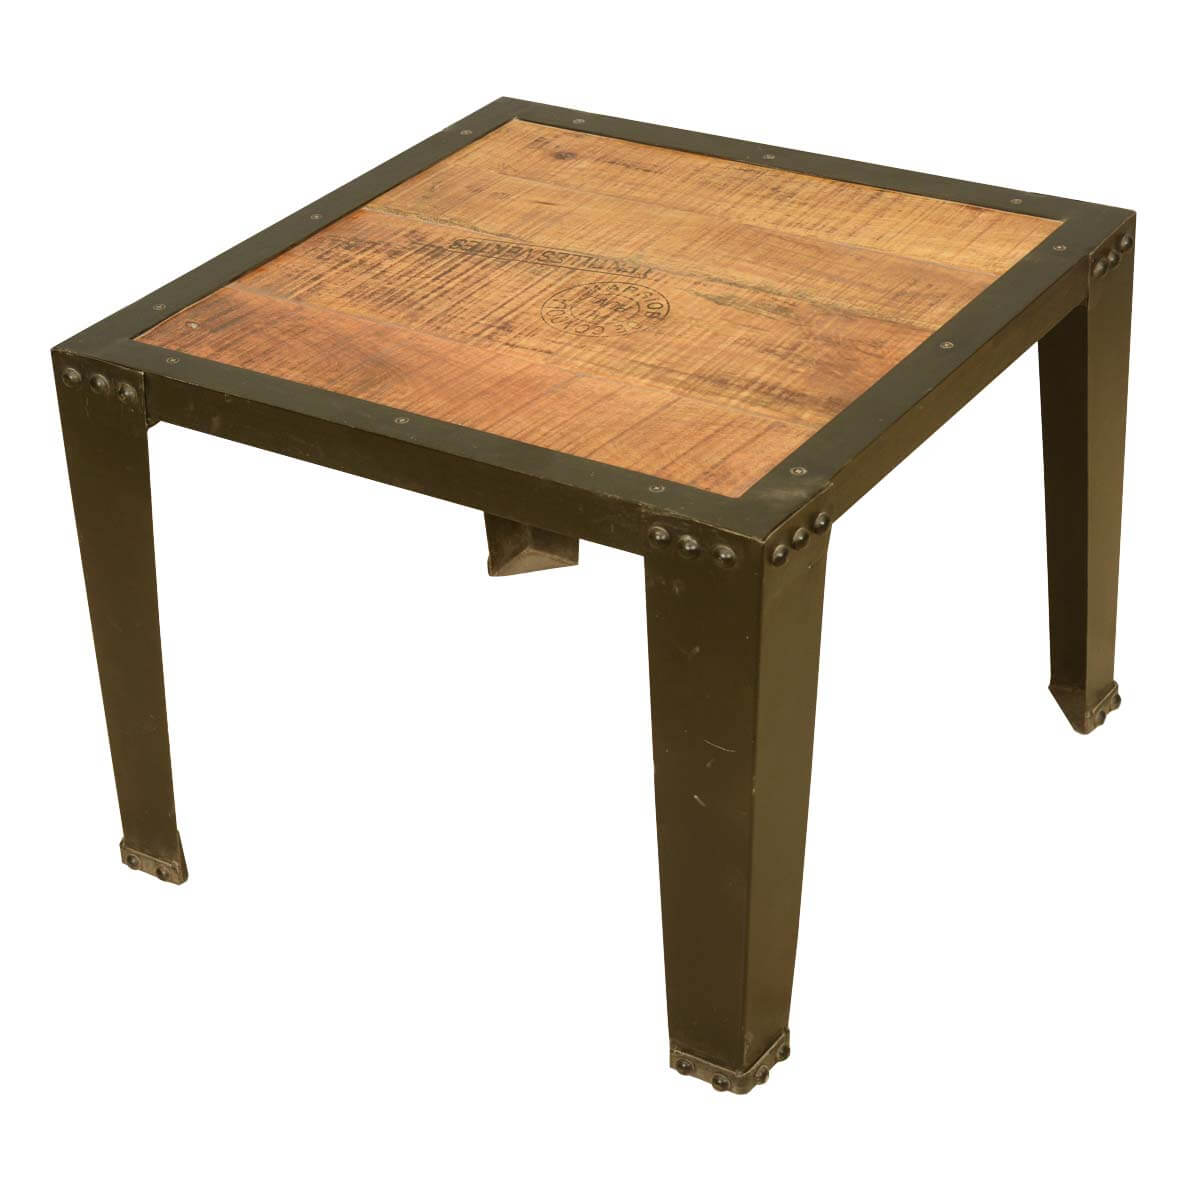 Industrial Look End Tables Rustic Industrial Style Acacia Wood And Iron Fusion End Table